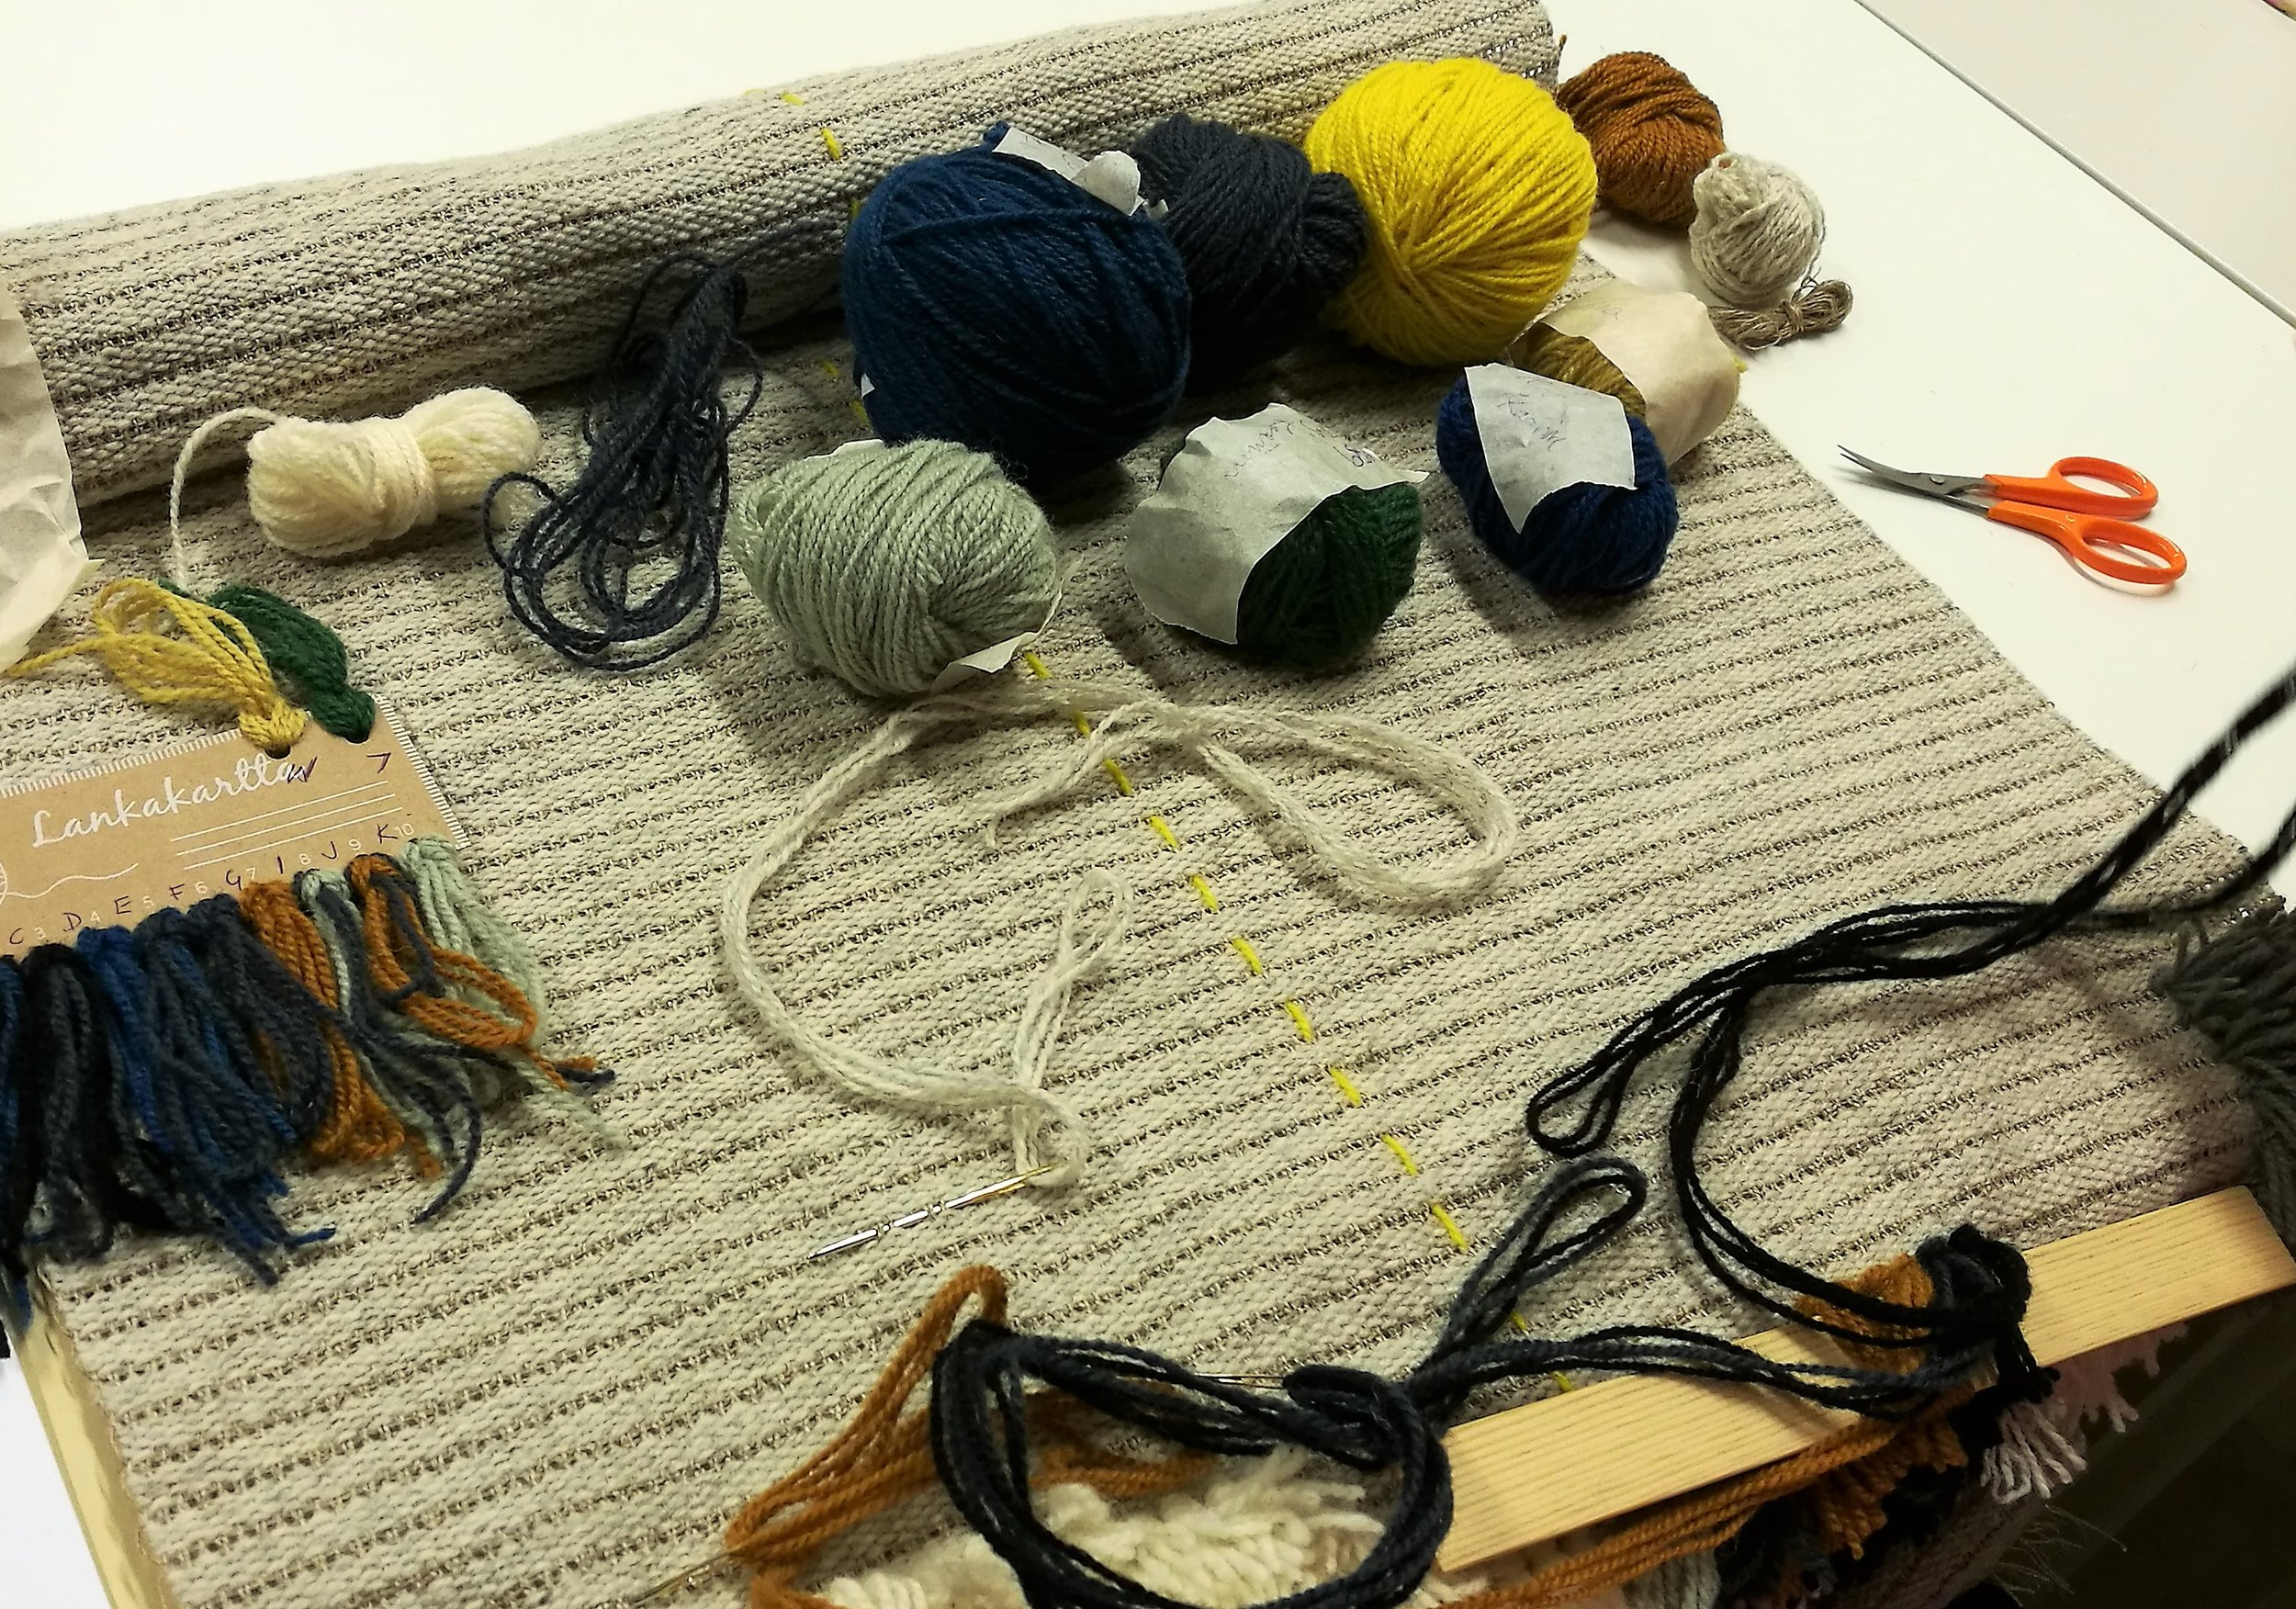 Come and share your passion for rya rug making!